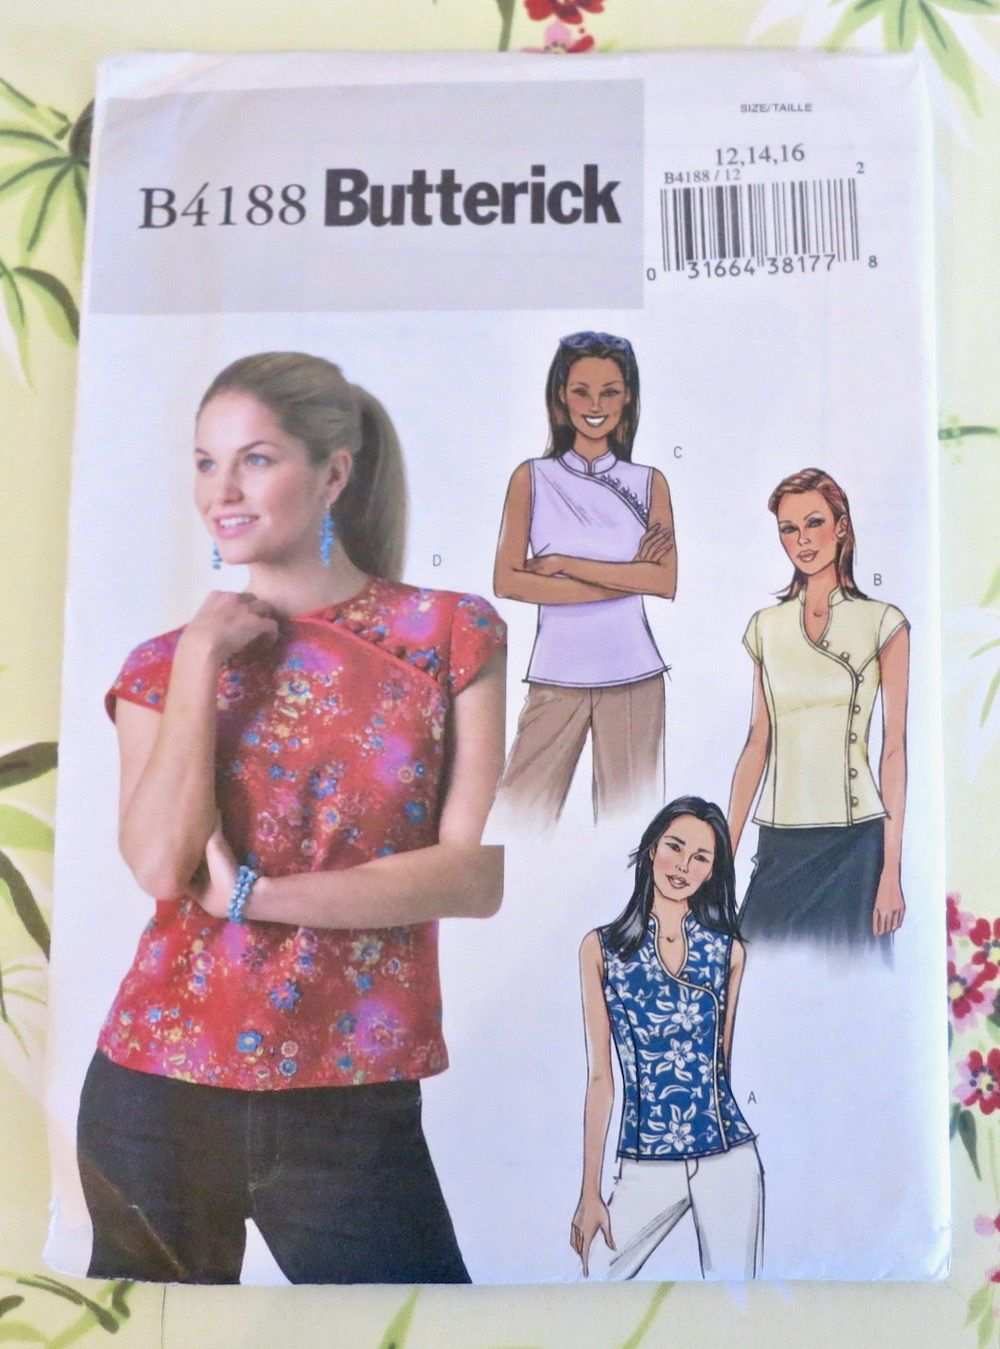 Womens cheongsam chinese blouse pattern butterick 4188 butterick misses top sewing pattern easy sewing top petite top patterns missesmiss petite sizes uncut jeuxipadfo Image collections